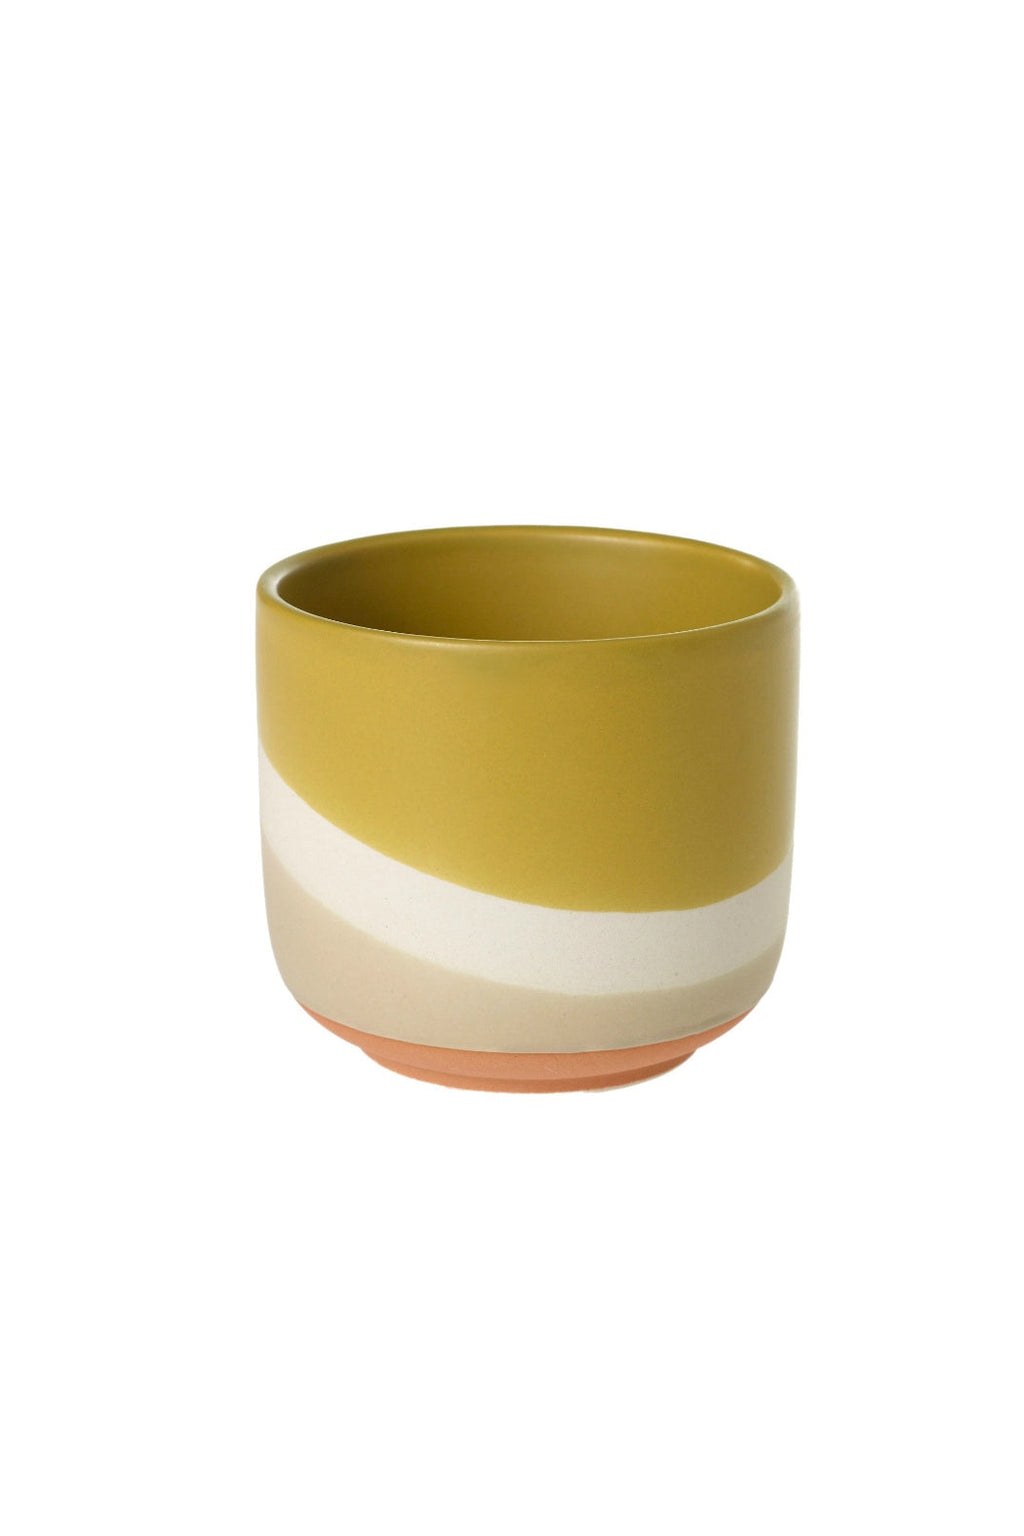 Accent Decor Colorway Pot, Mustard